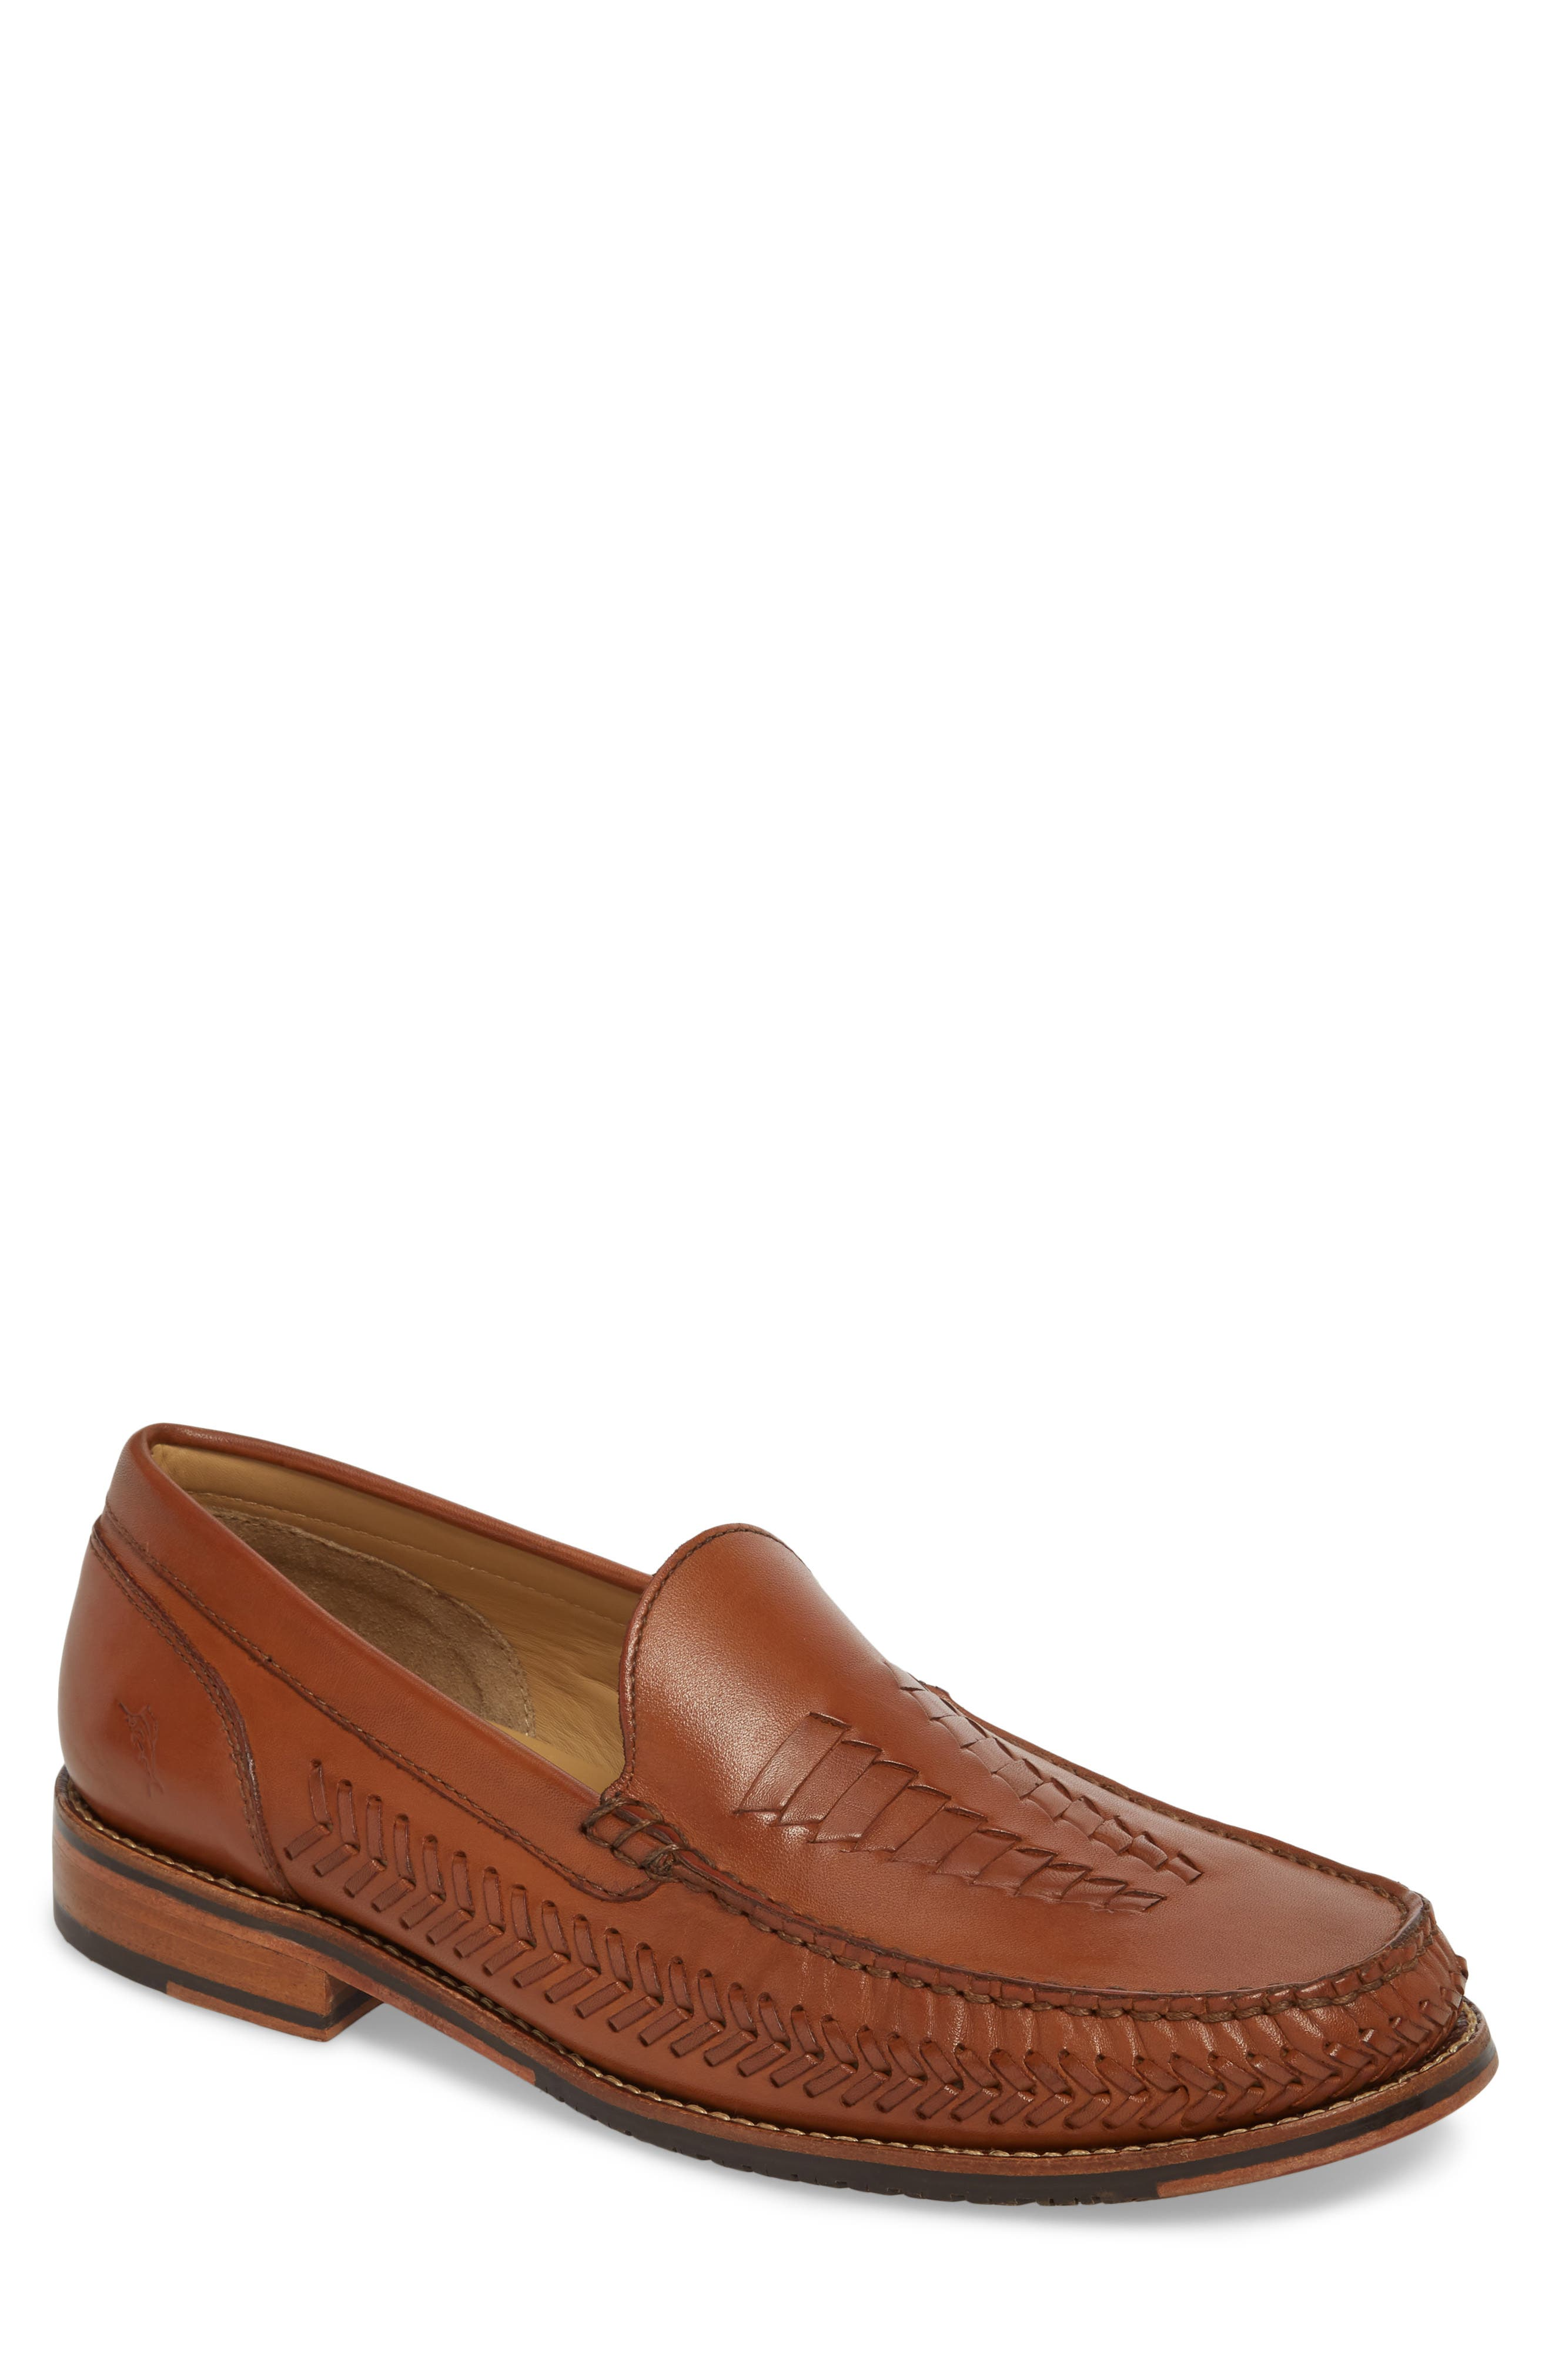 Hasslington Woven Venetian Loafer,                         Main,                         color, 204